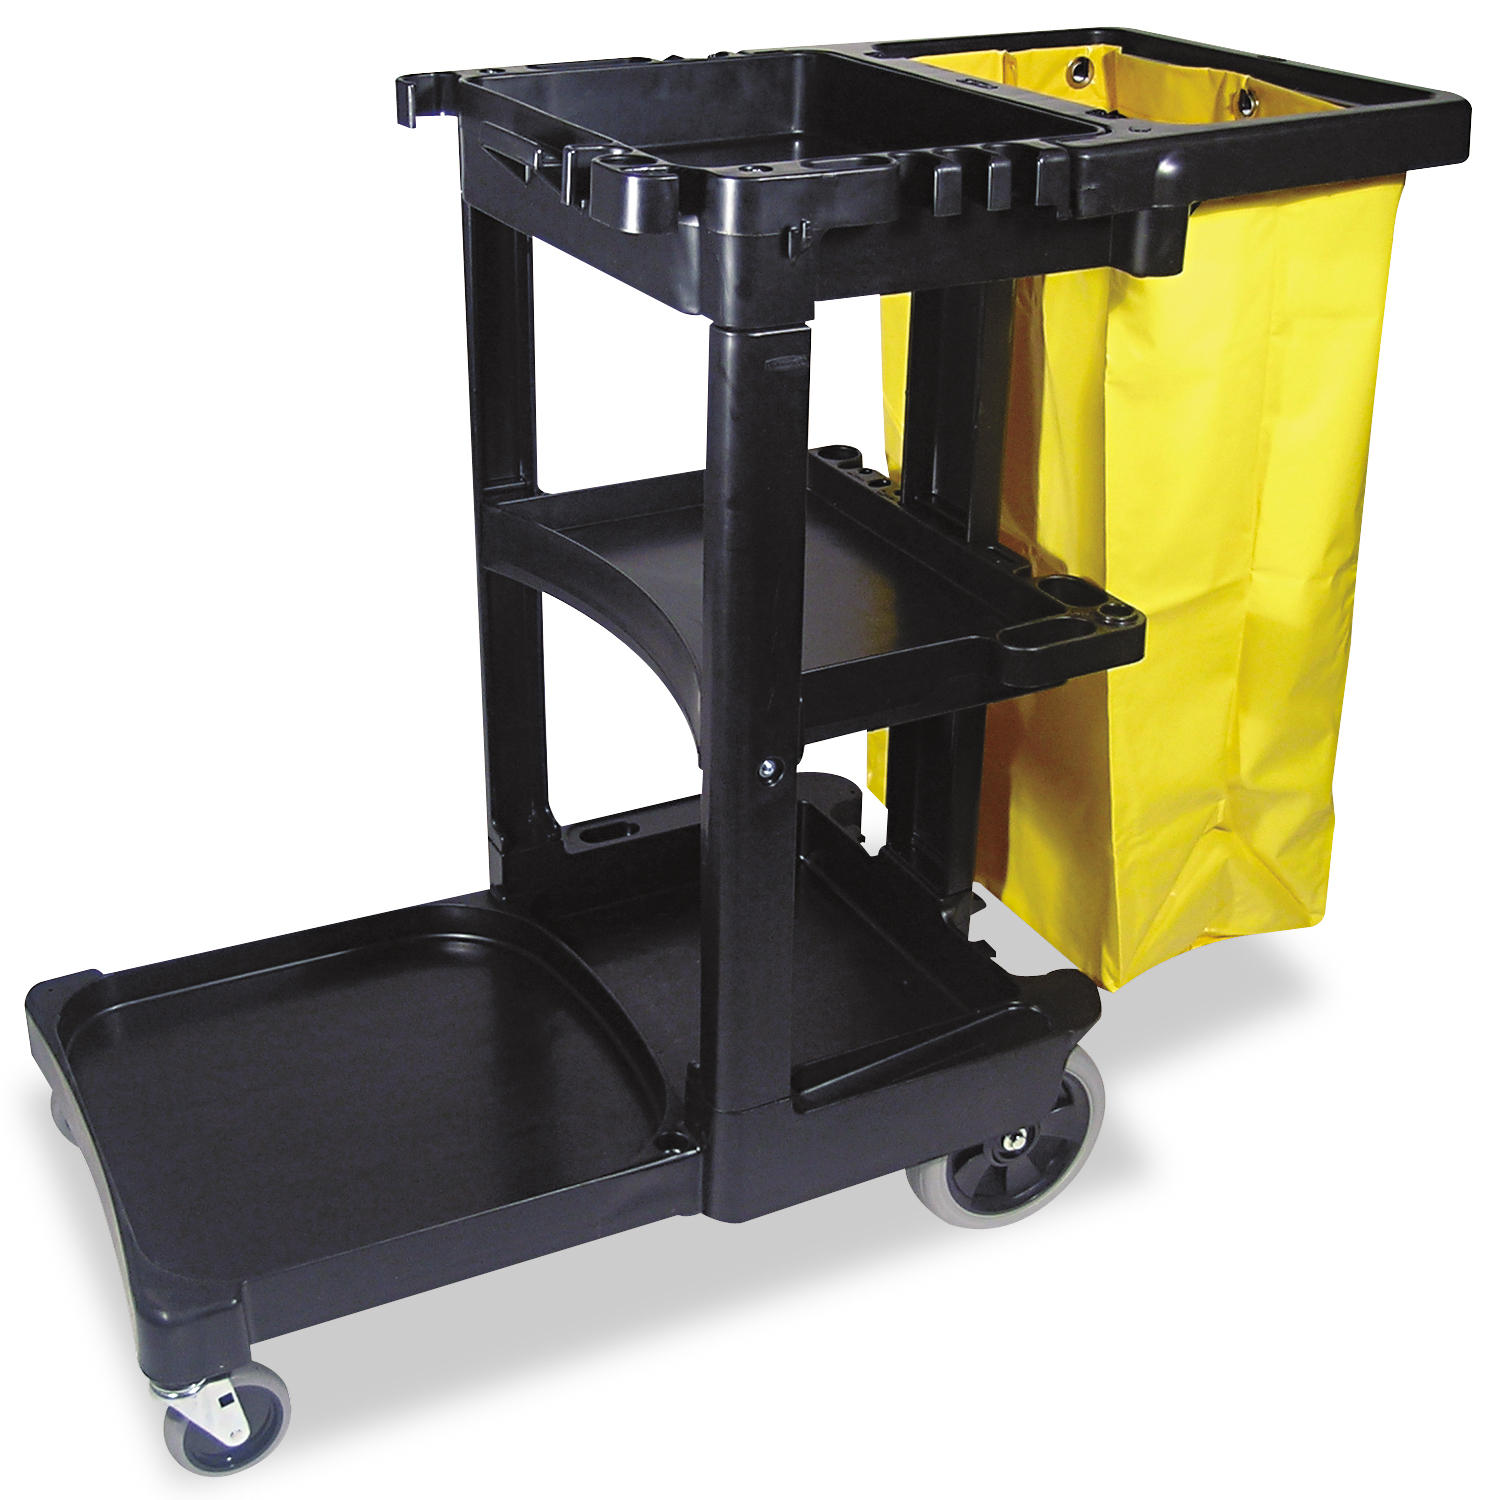 Rubbermaid Cleaning Cart with Zippered Bag With 3 Shelves (Black)